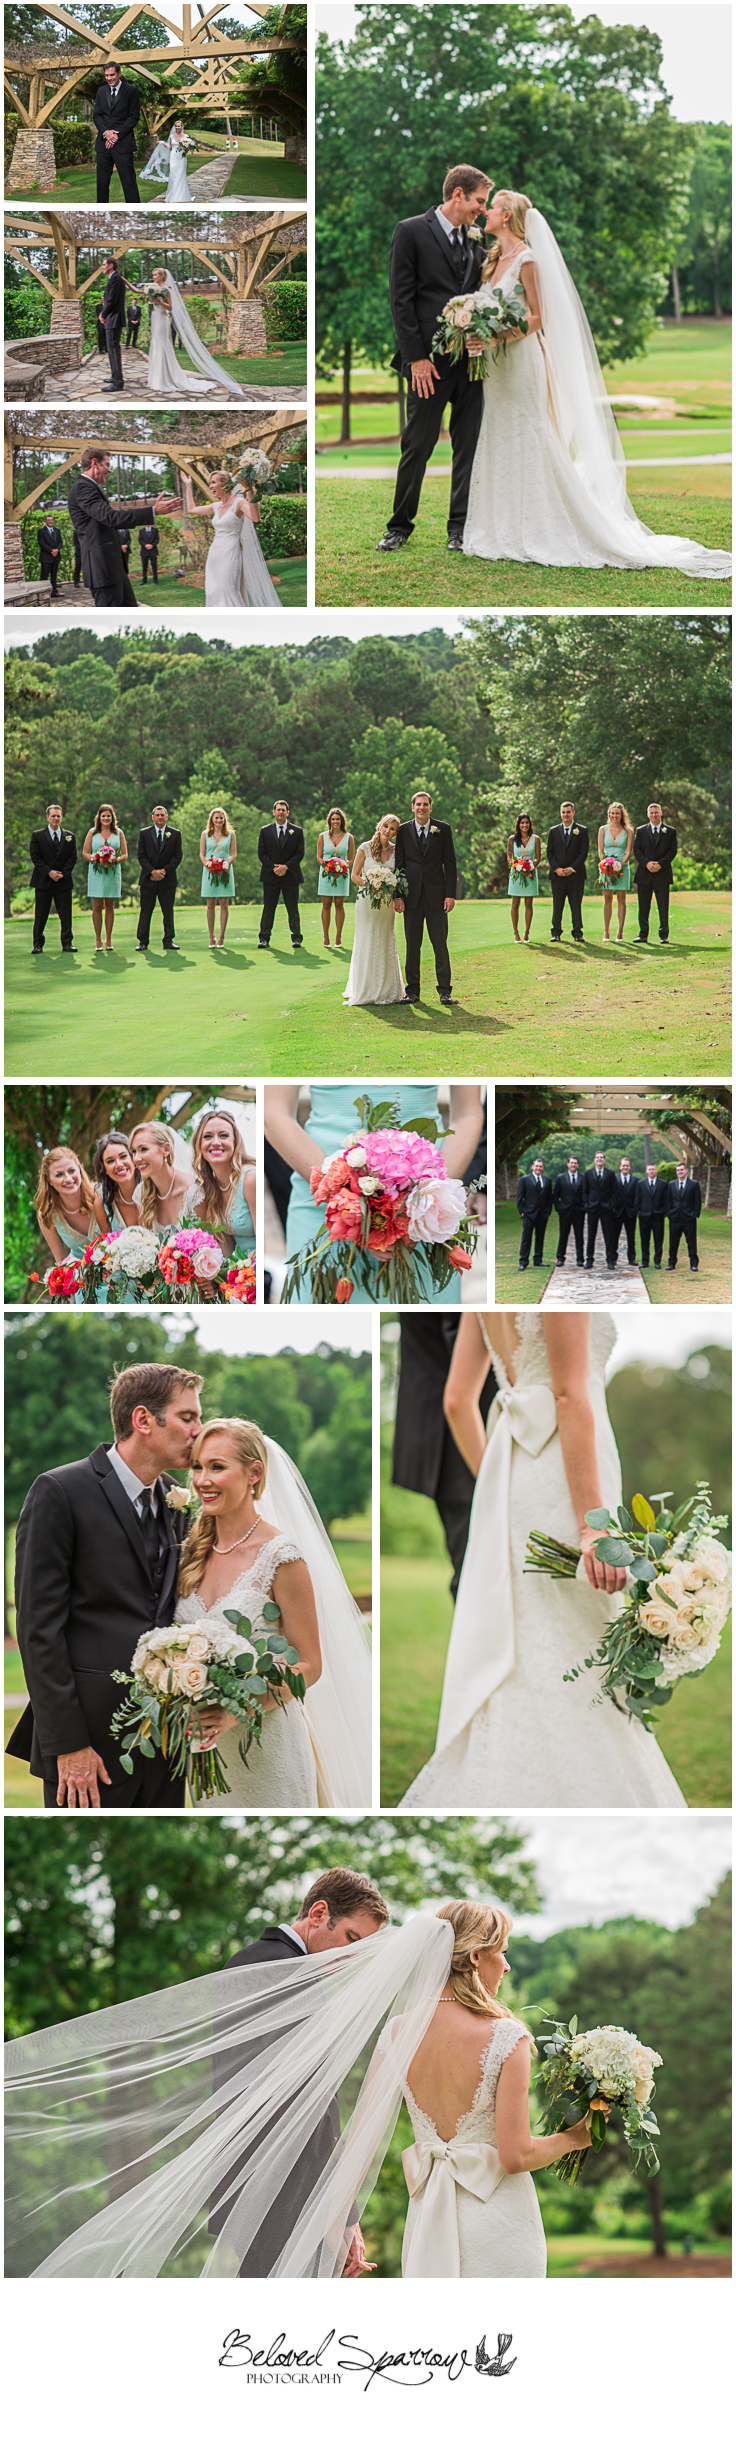 Wedding photography at Flat Creek Country Club in Peachtree City GA